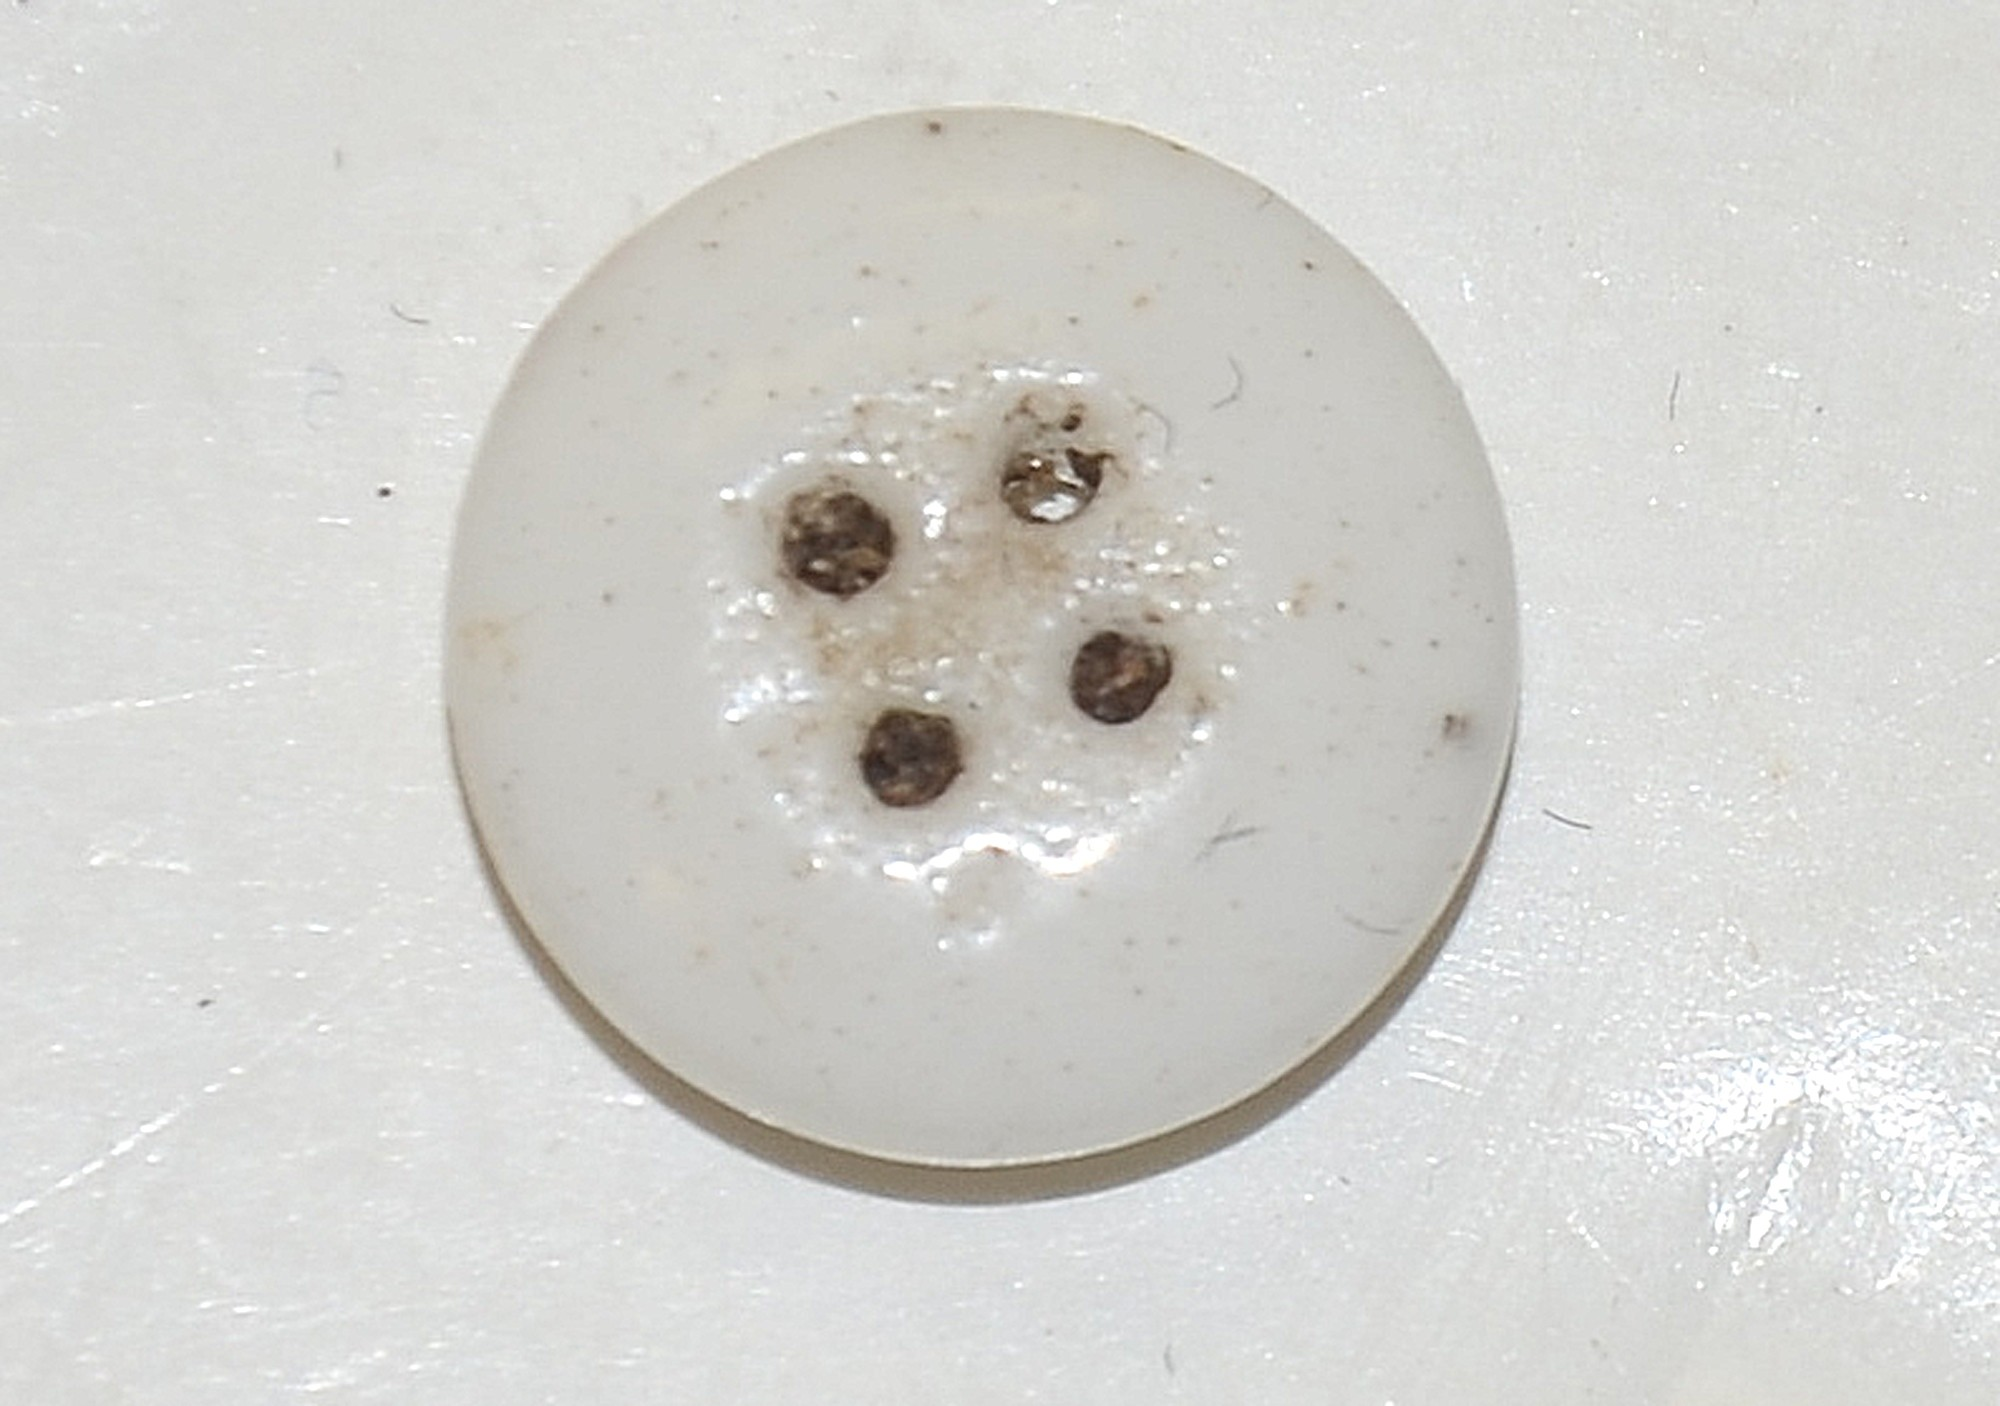 US/CS PORCELAIN SHIRT BUTTON, RECOVERED FROM KLINGEL FARM, GETTYSBURG